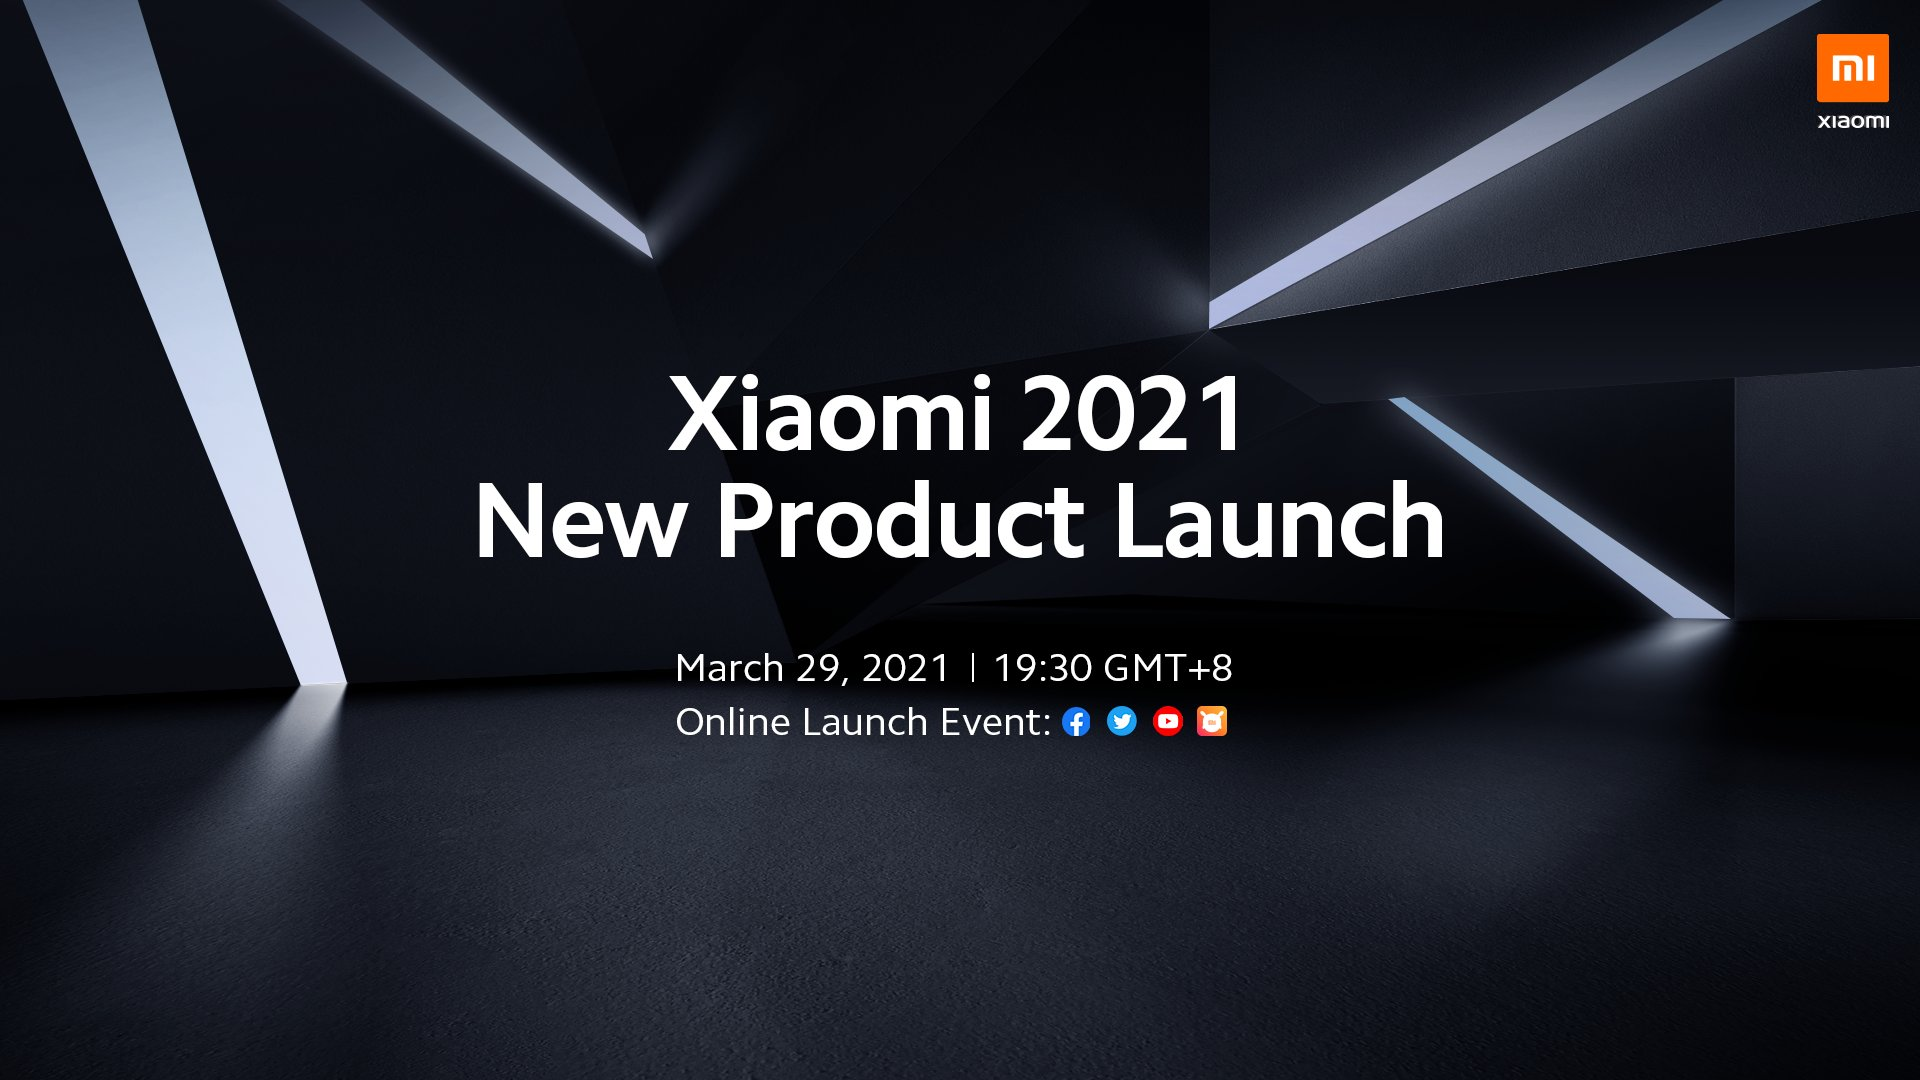 Xiaomi 'Mega Launch' event scheduled for March 29: Mi 11 Ultra, Pro, Lite expected to be launched